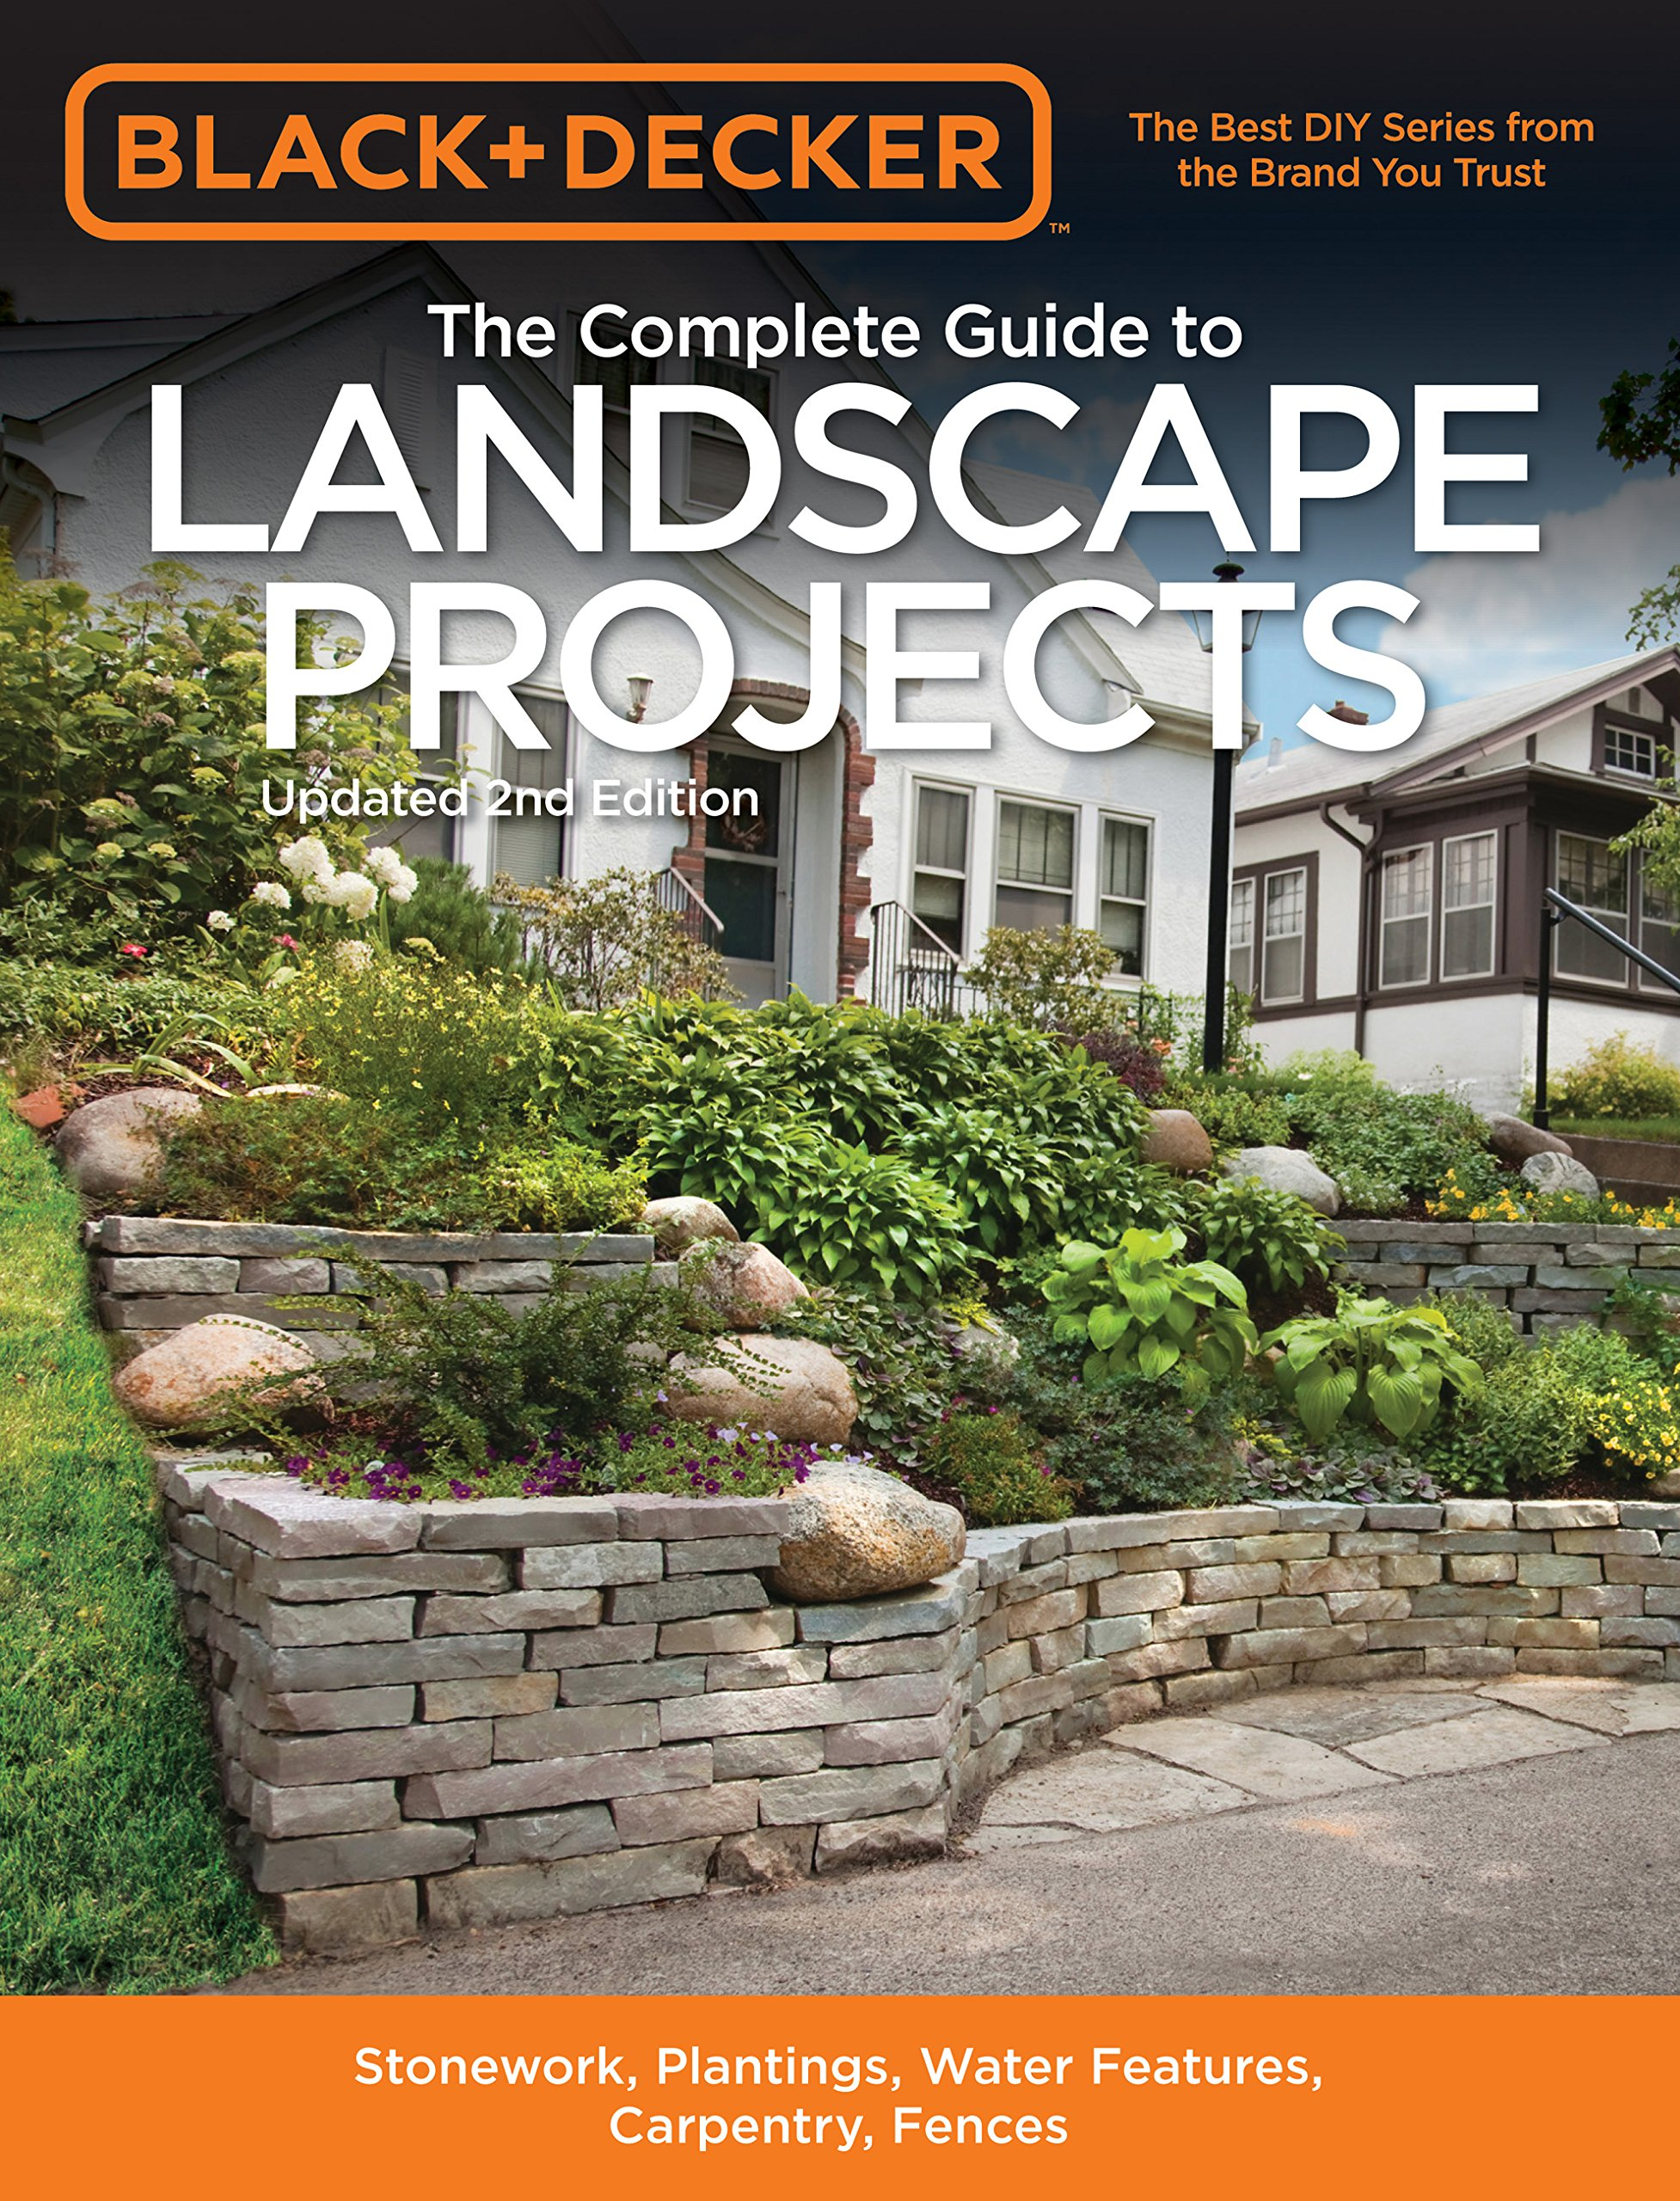 Black + Decker The Complete Guide To Landscape Projects  Stonework Plantings Water Features Carpentry Fences  Black + Decker Complete Guide To...